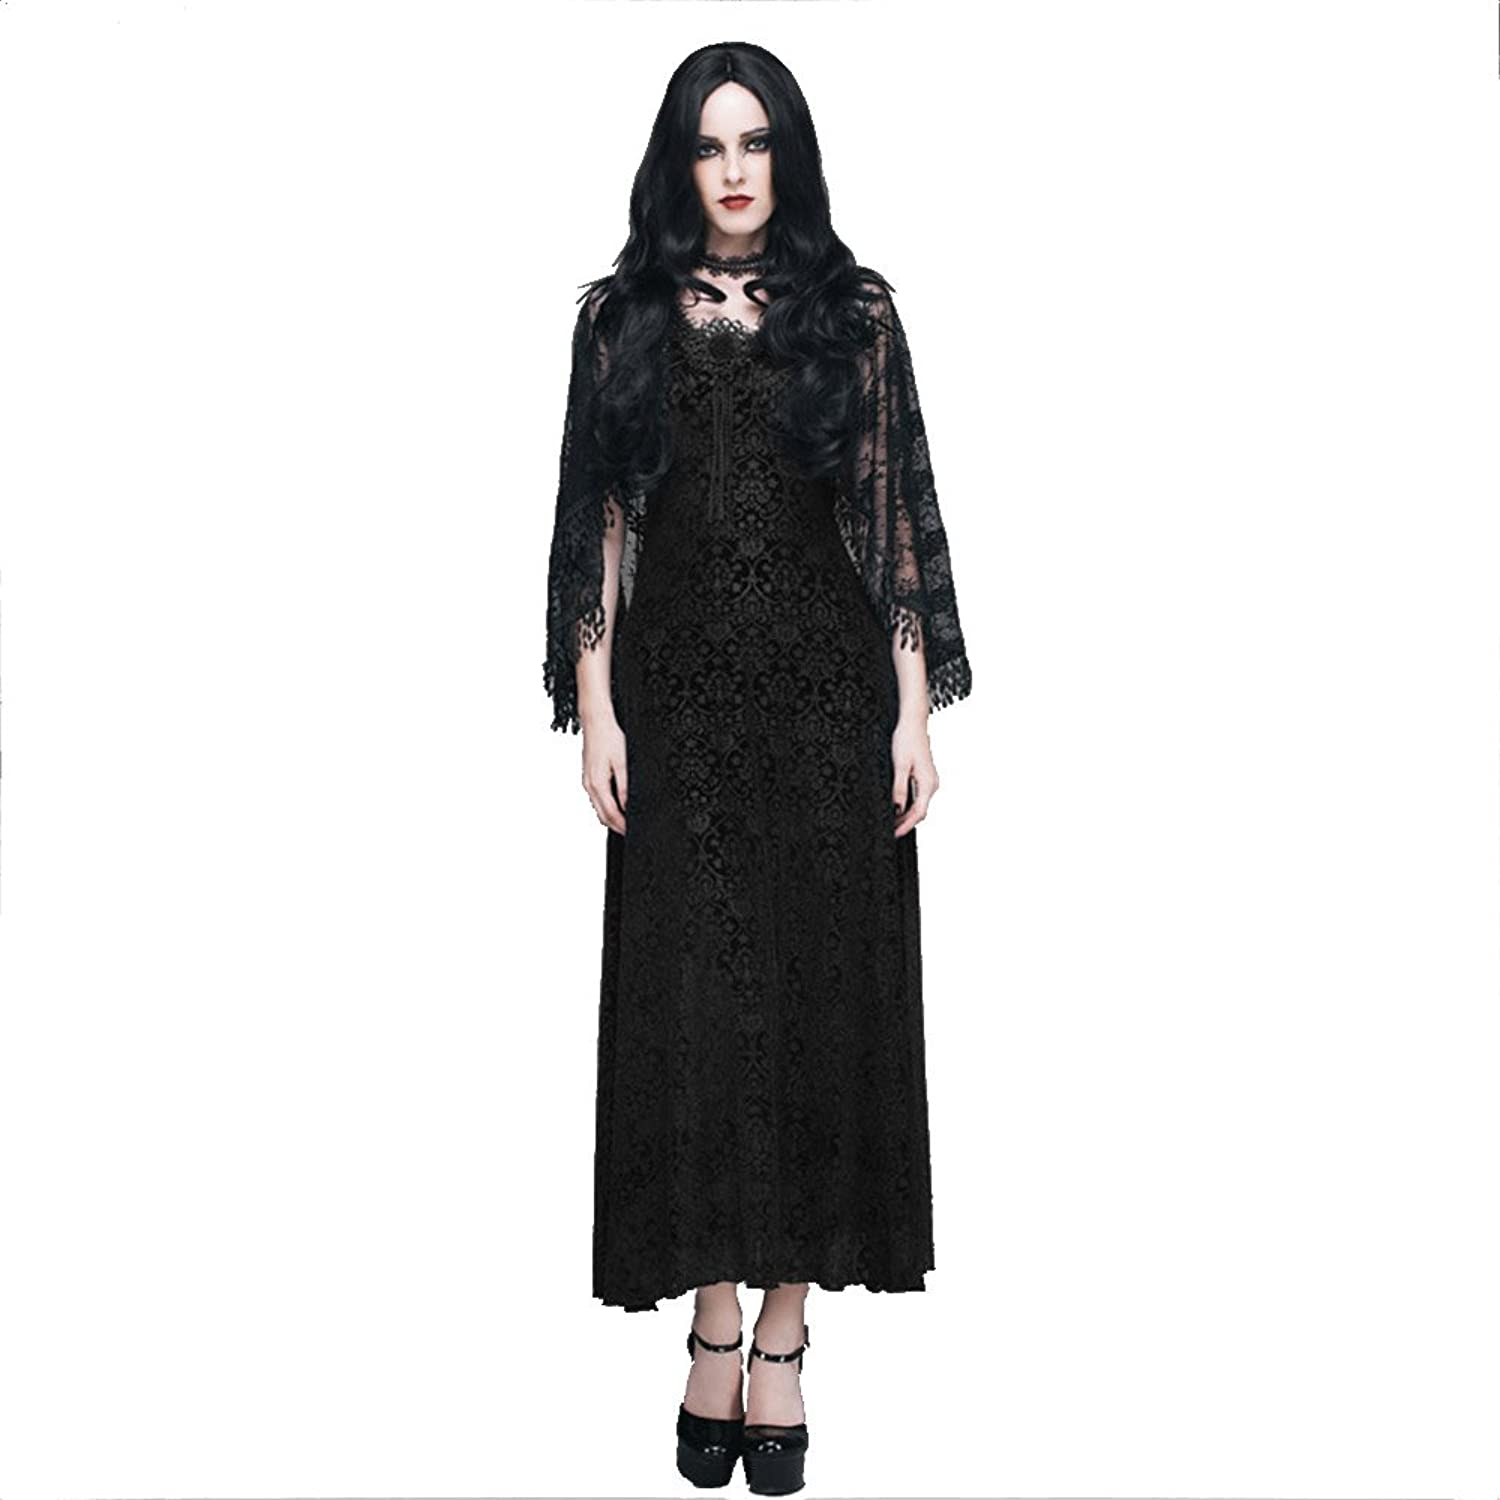 Gothic Women's Cocktail Dress With Tassel Shawl Steampunk Sleeveless Lace Prom Fomal Dress Retro Black Twopieces Sets